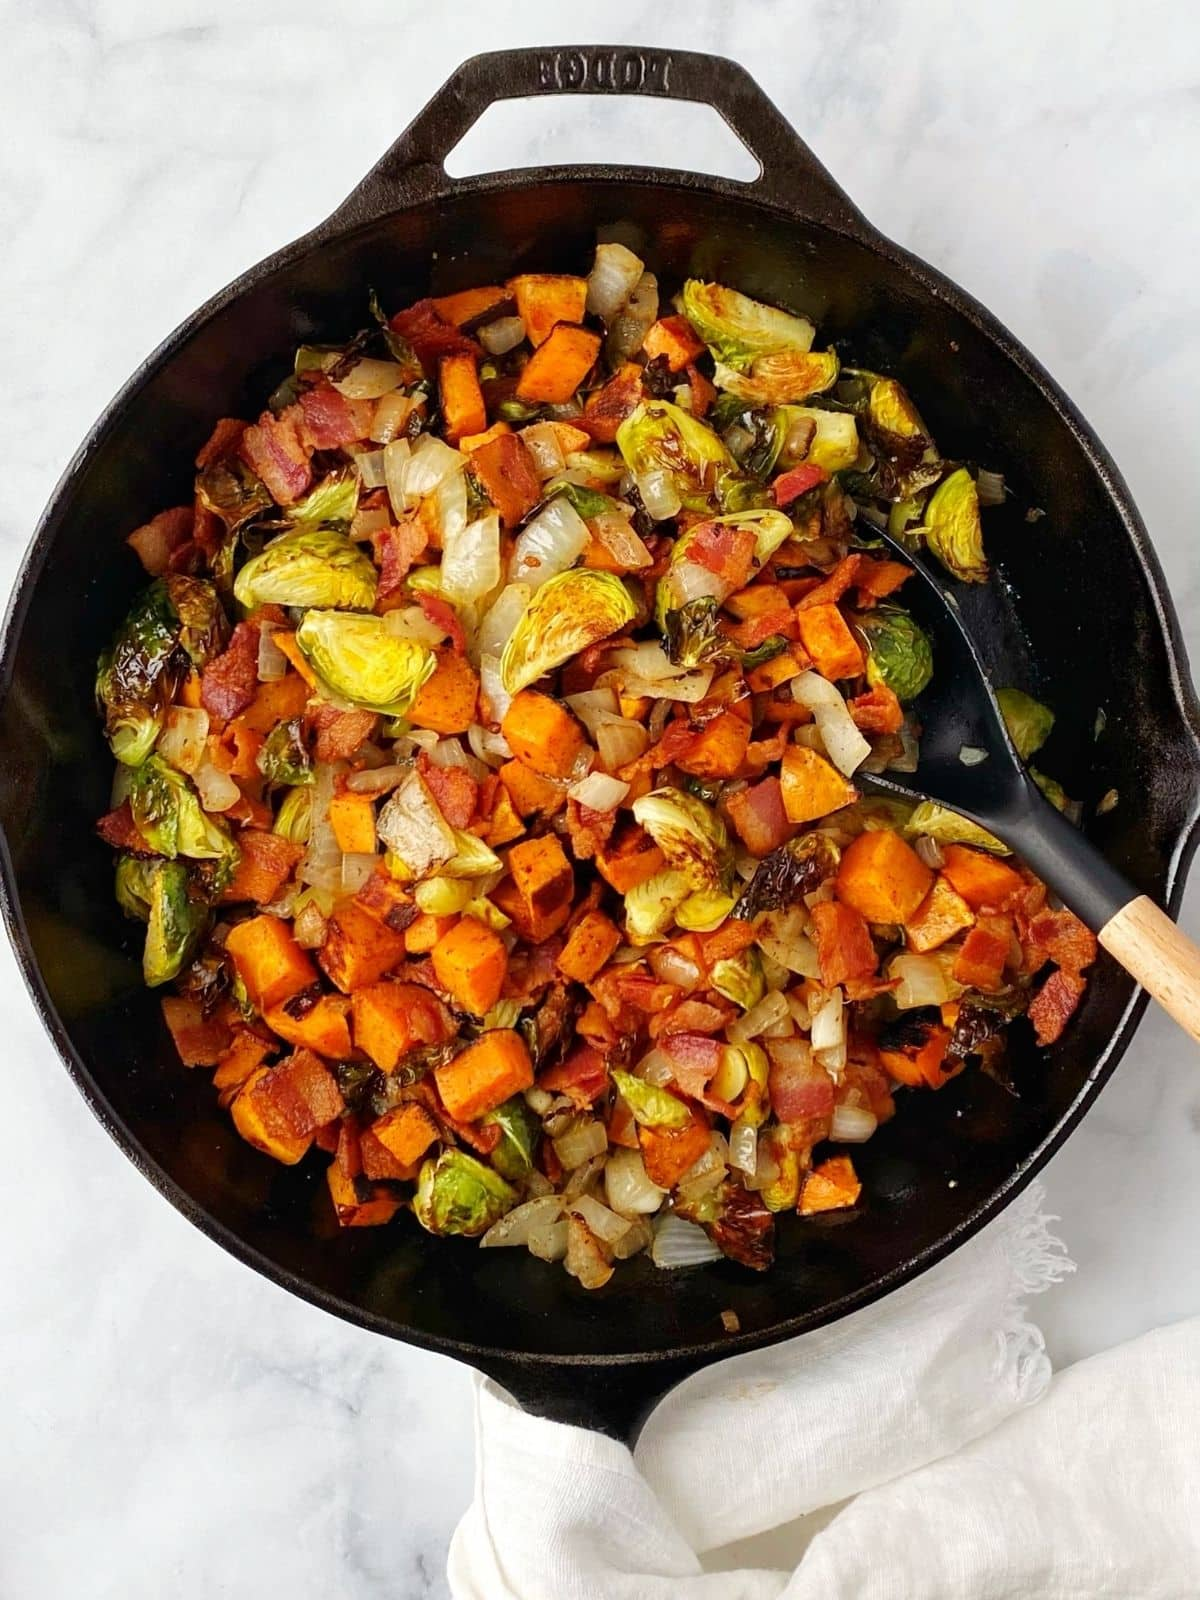 veggies and bacon combined in the skillet